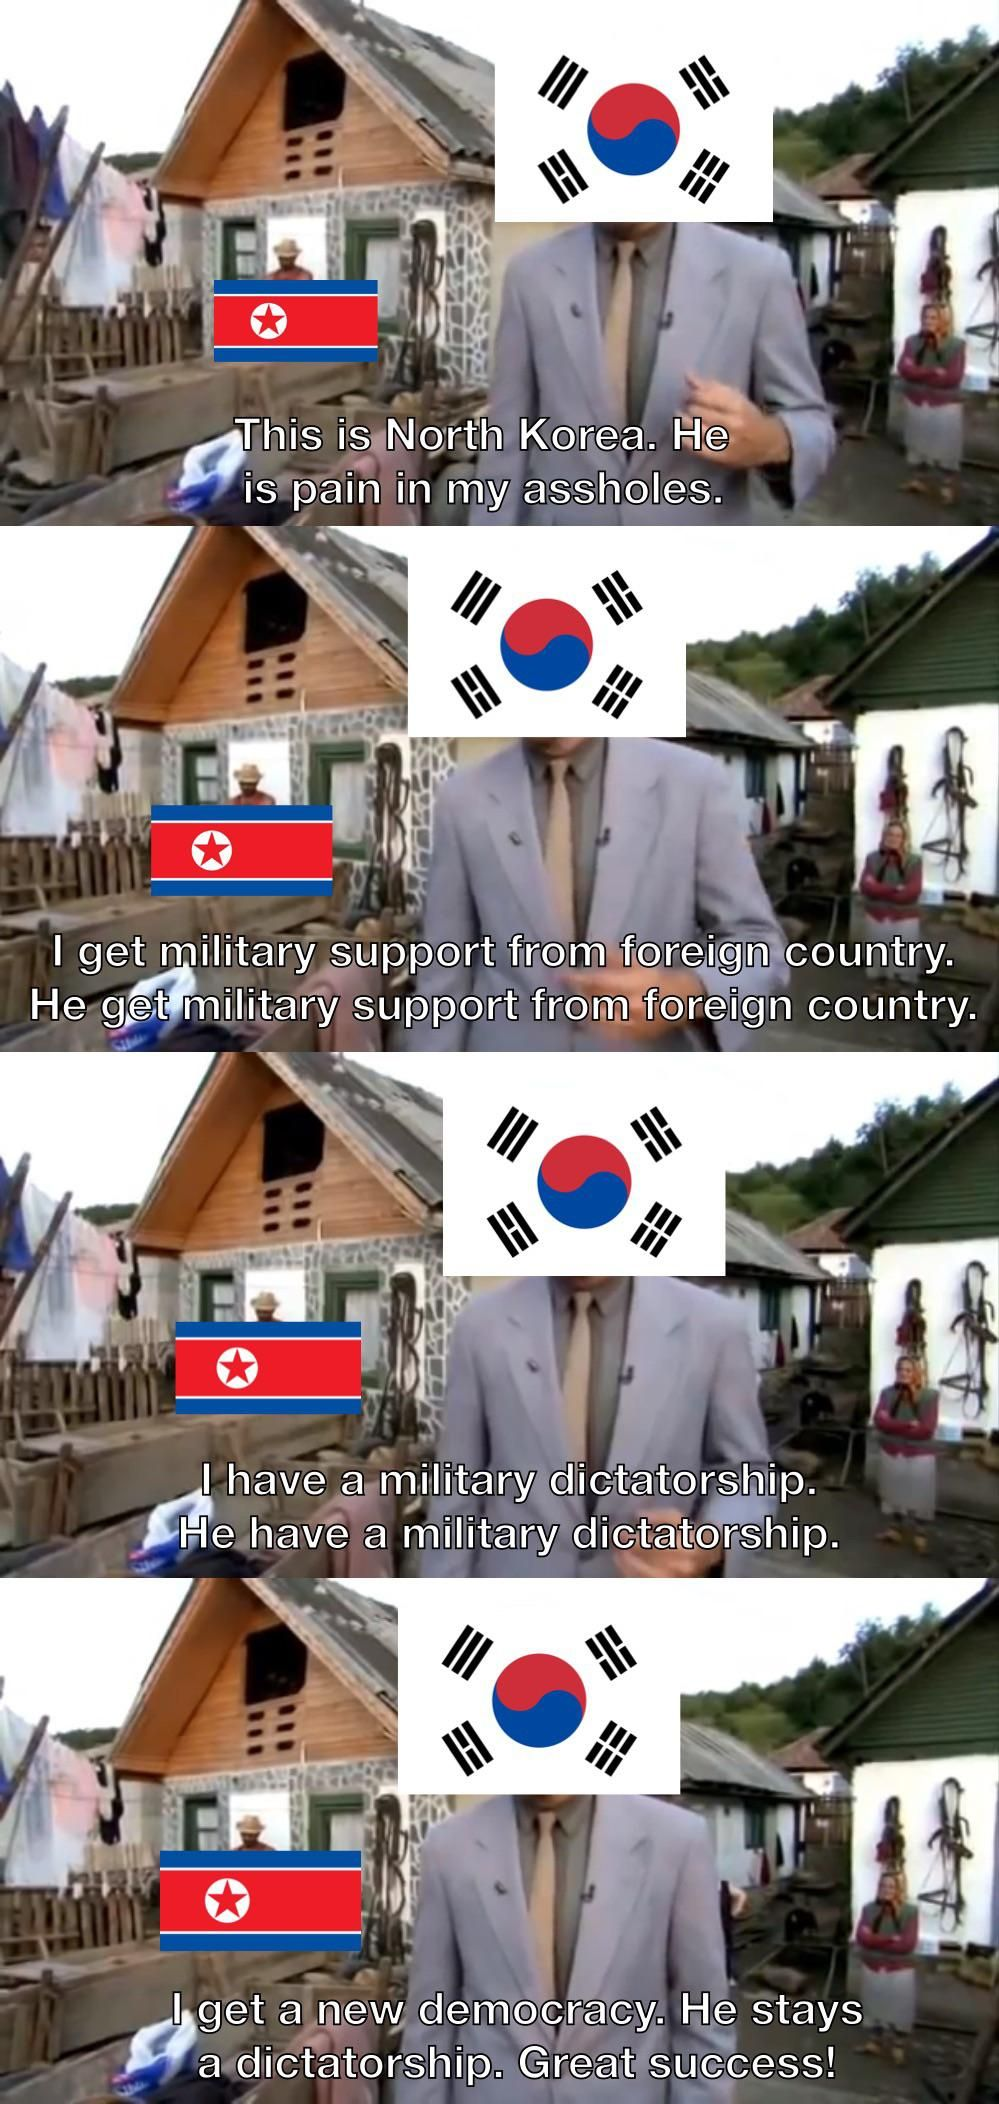 It will make glorious benefit for nation of Korea